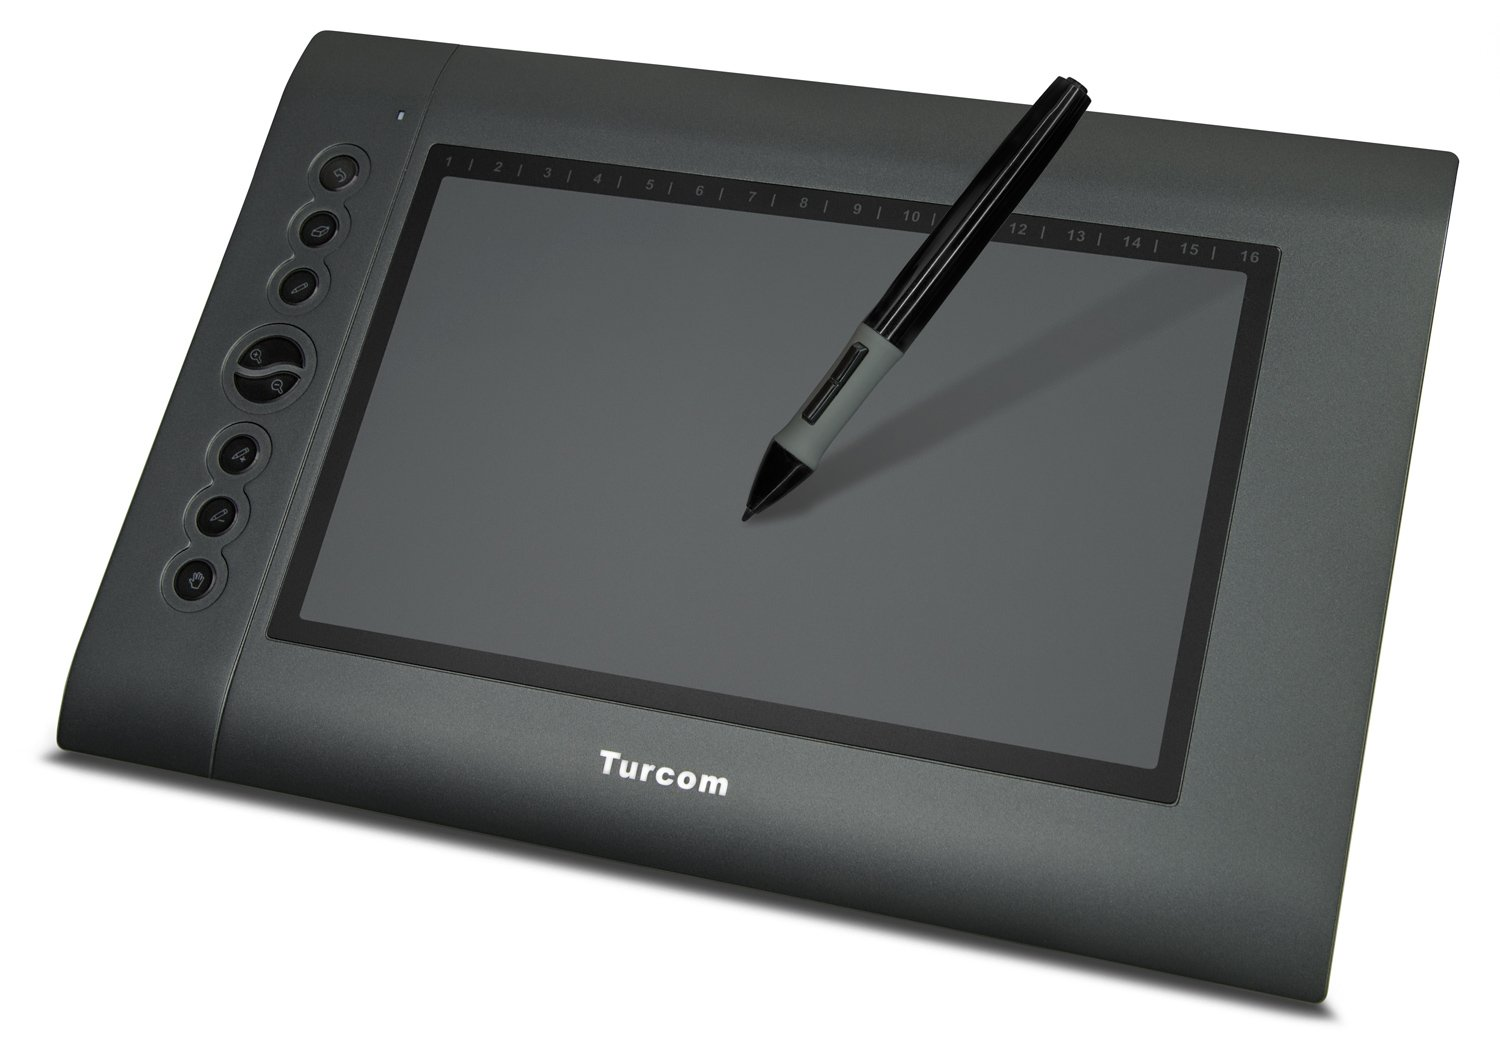 Turcom 10 x 6.25 Inches Graphic Drawing Tablet (TS-6610H)